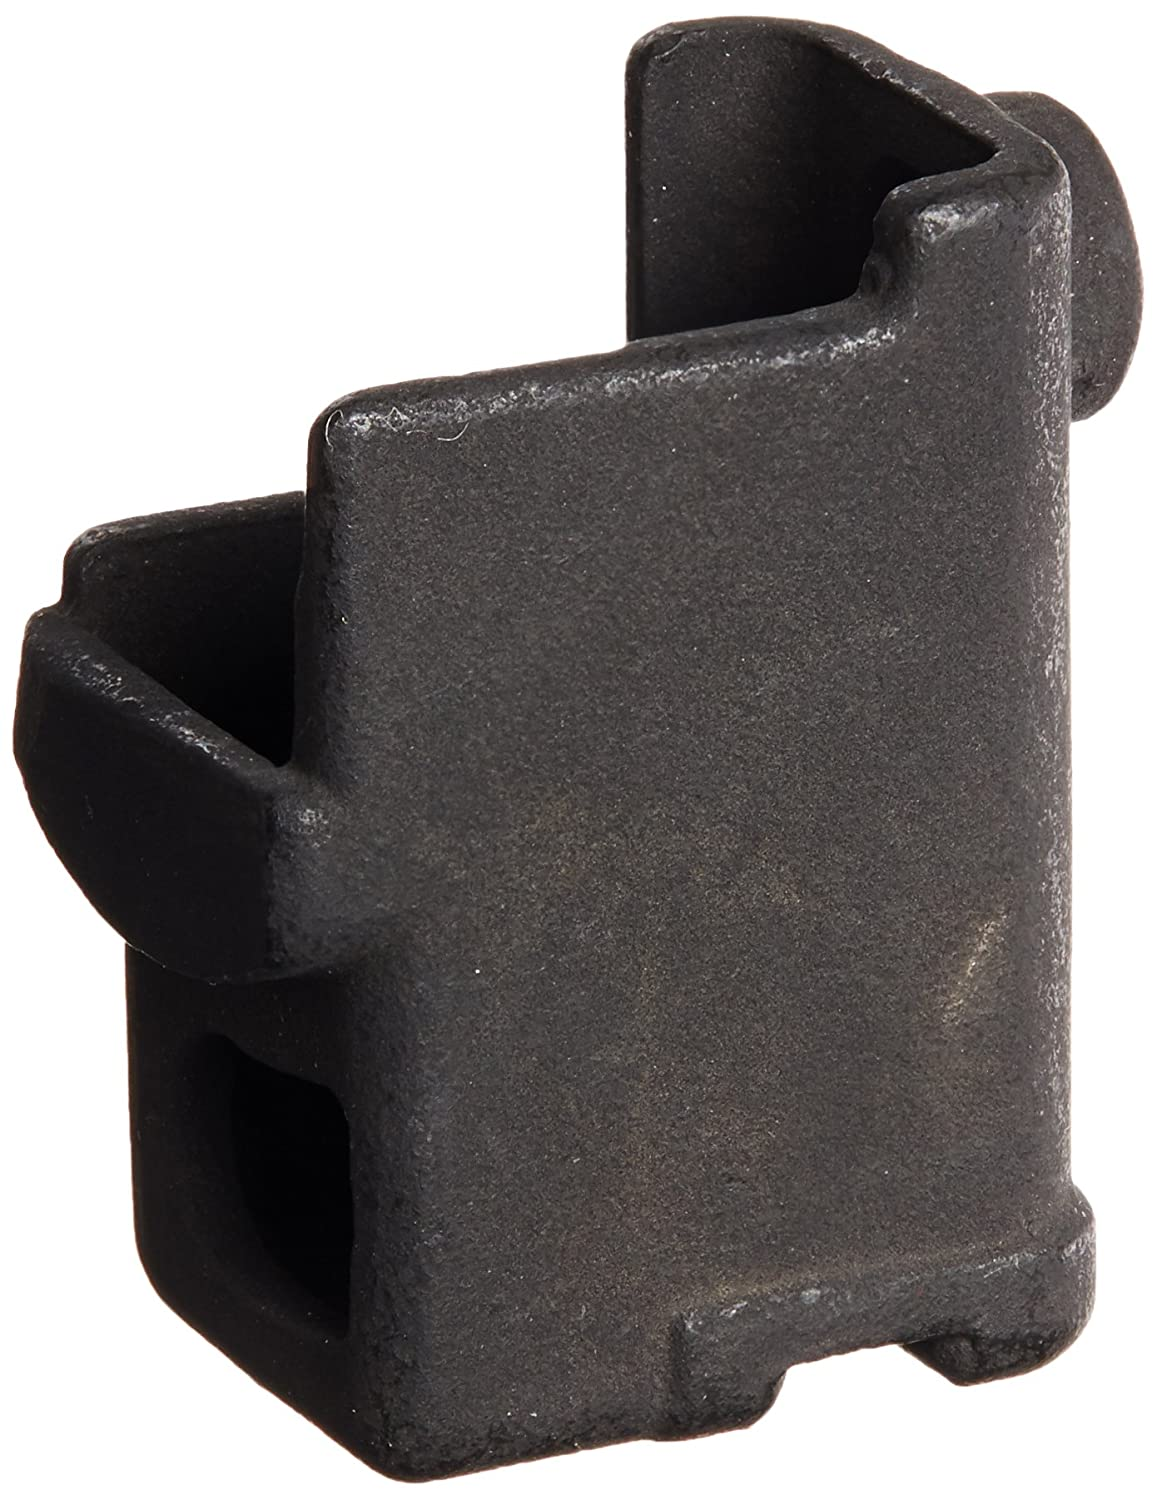 Hitachi 326589 Blade Holder C CR13V BY//VB Replacement Part